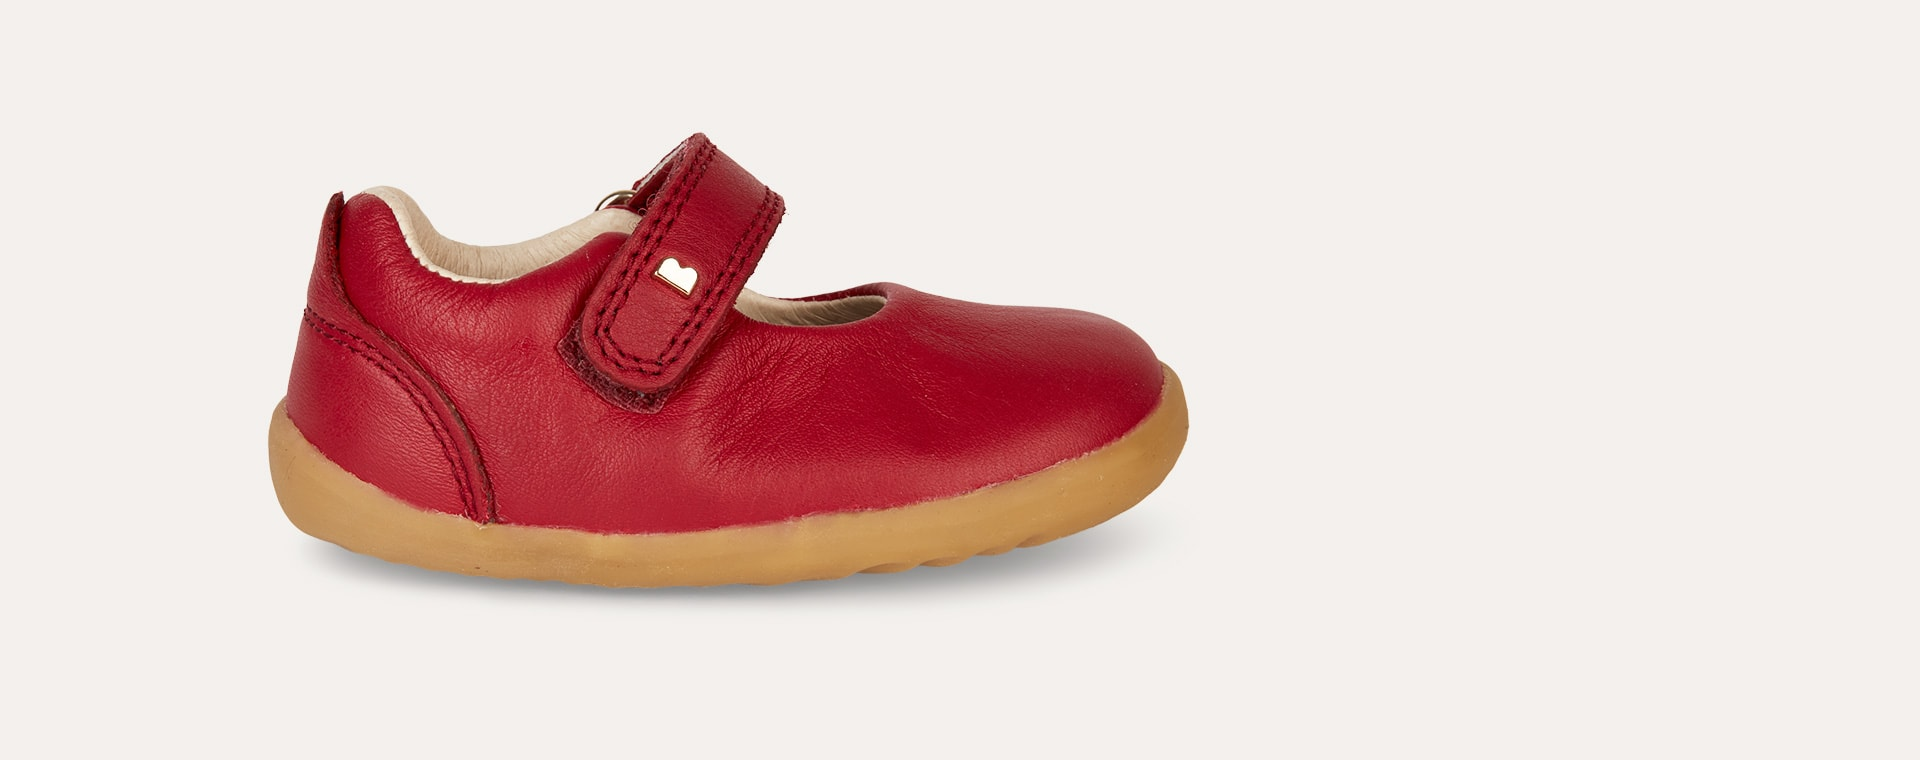 Rio Red Bobux Step-Up Delight Mary Jane Shoe